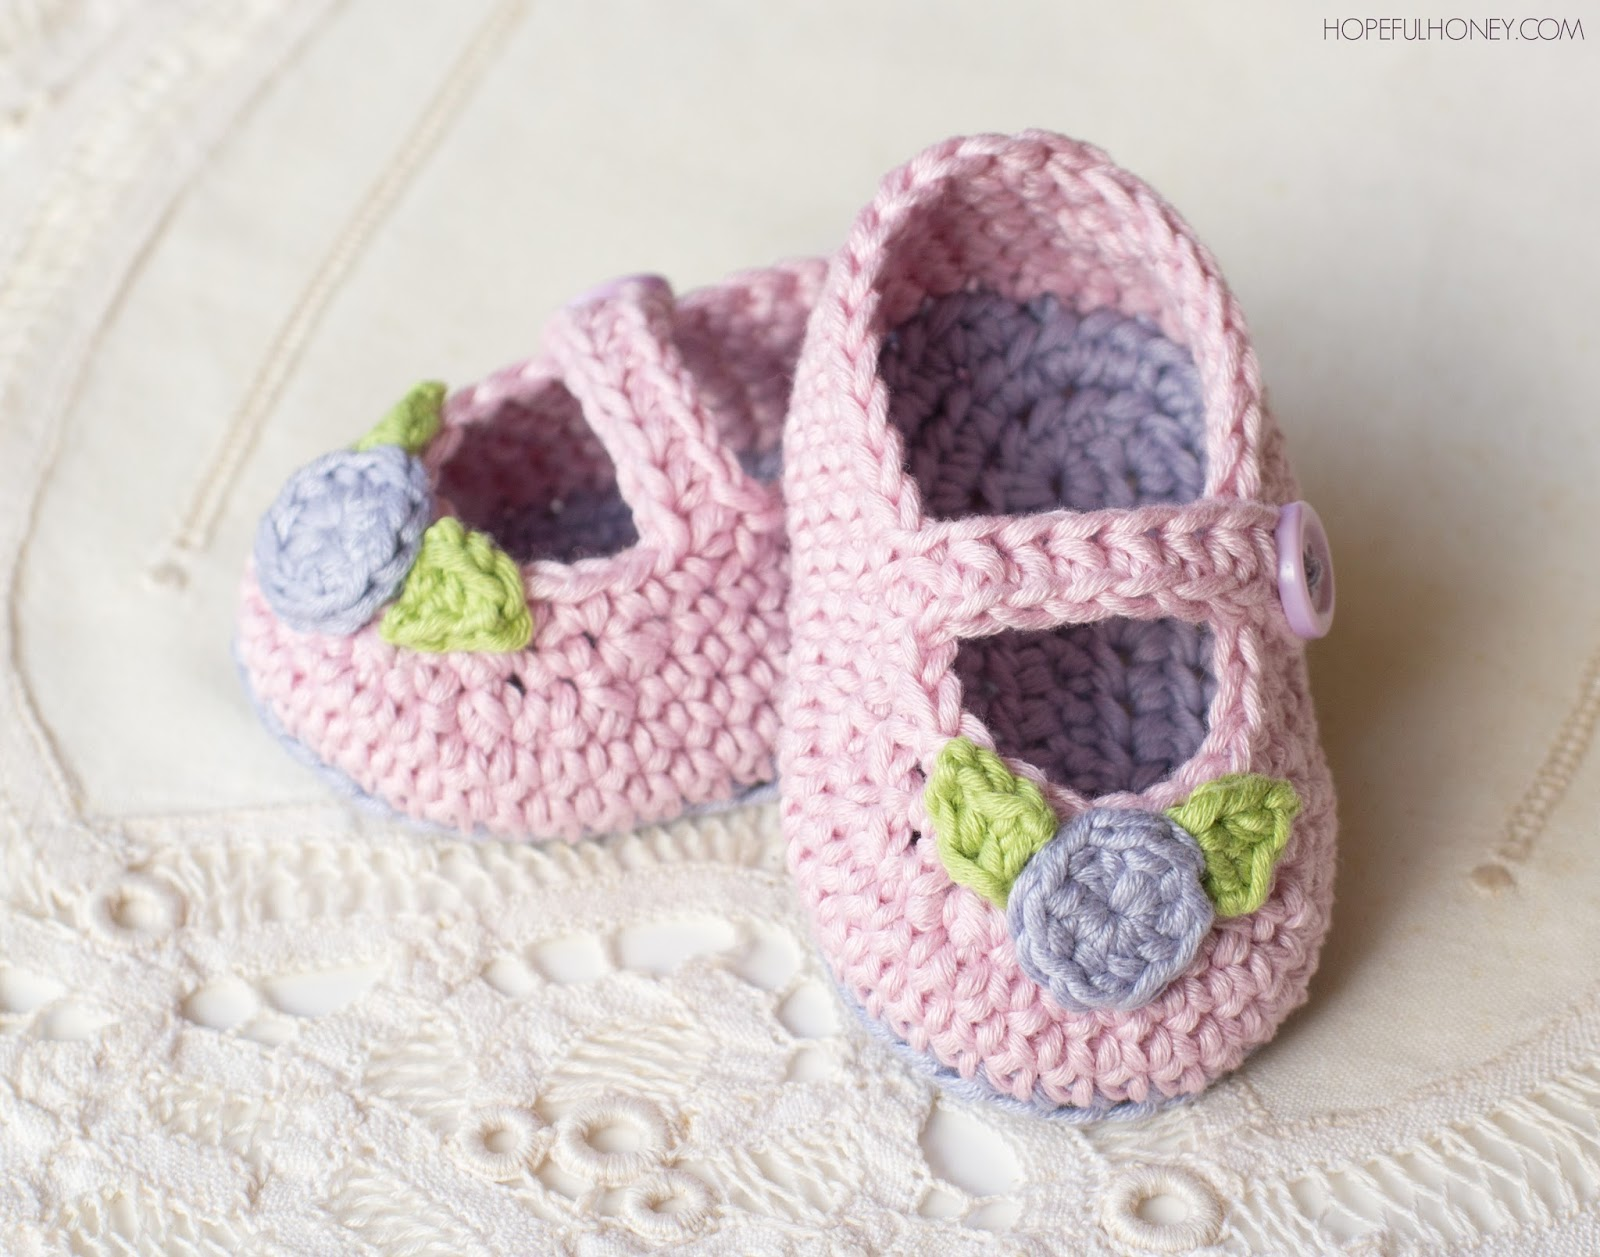 Free Crochet Pattern For Mary Jane Baby Slippers : Hopeful Honey Craft, Crochet, Create: Mary Jane Rosebud ...